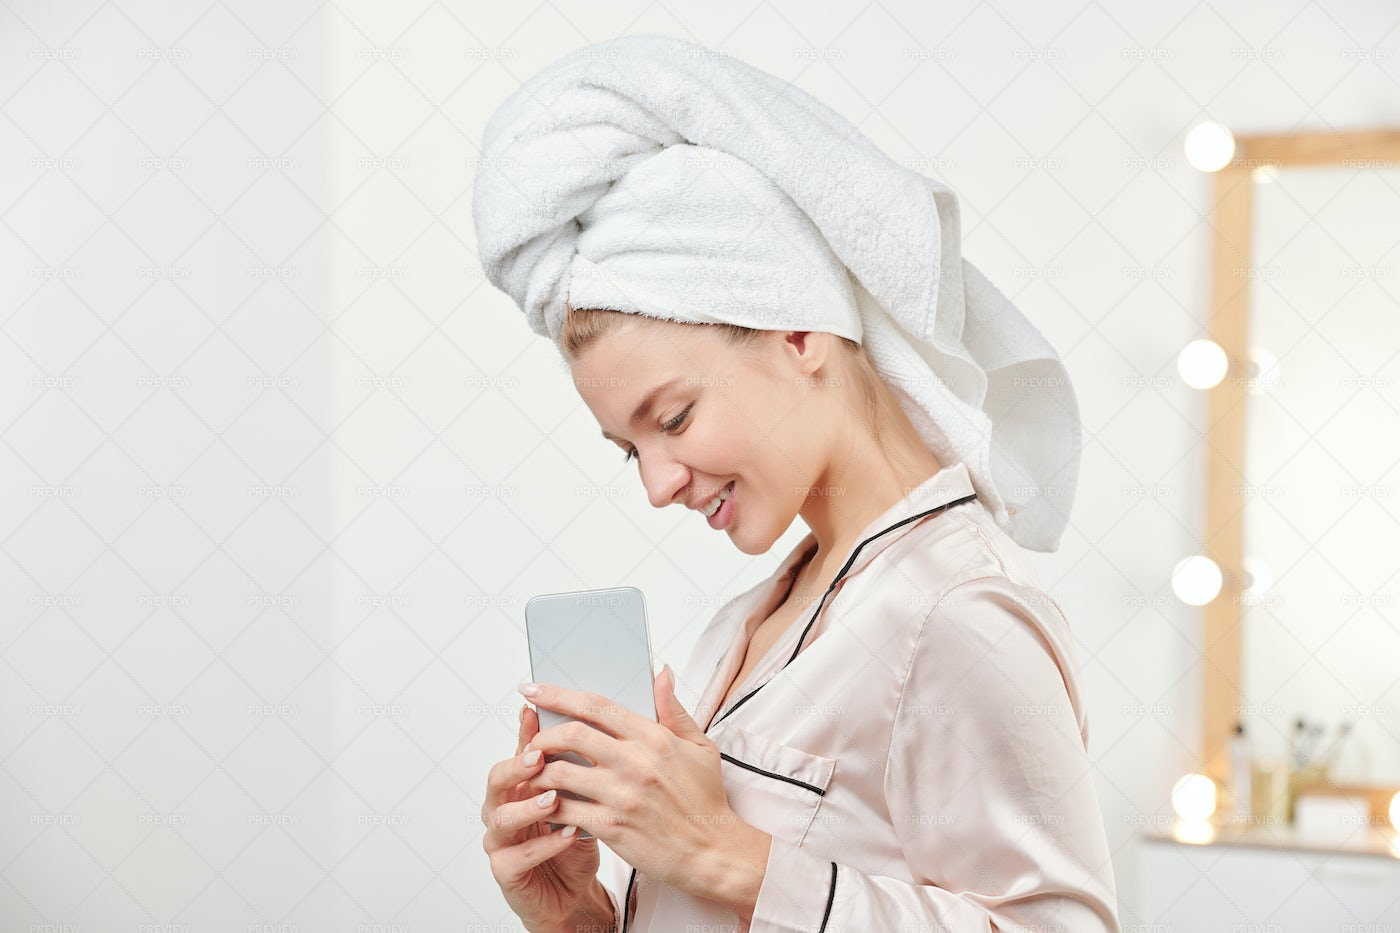 Pretty Smiling Girl With Towel On...: Stock Photos